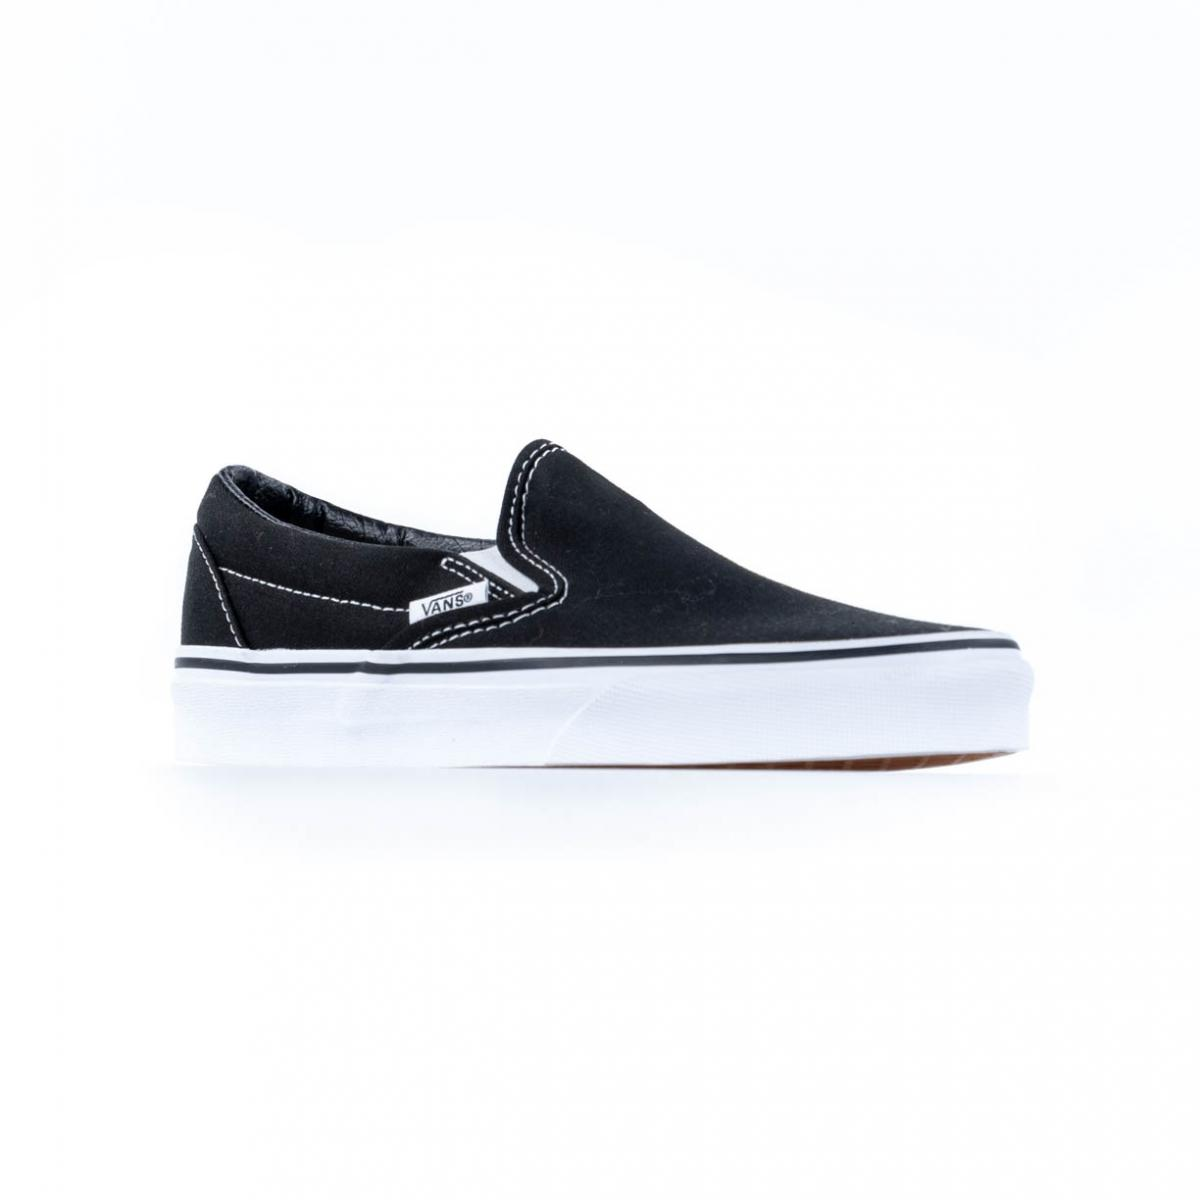 SCARPE VANS UNISEX SLIP ON VN000EYEBLK NERO